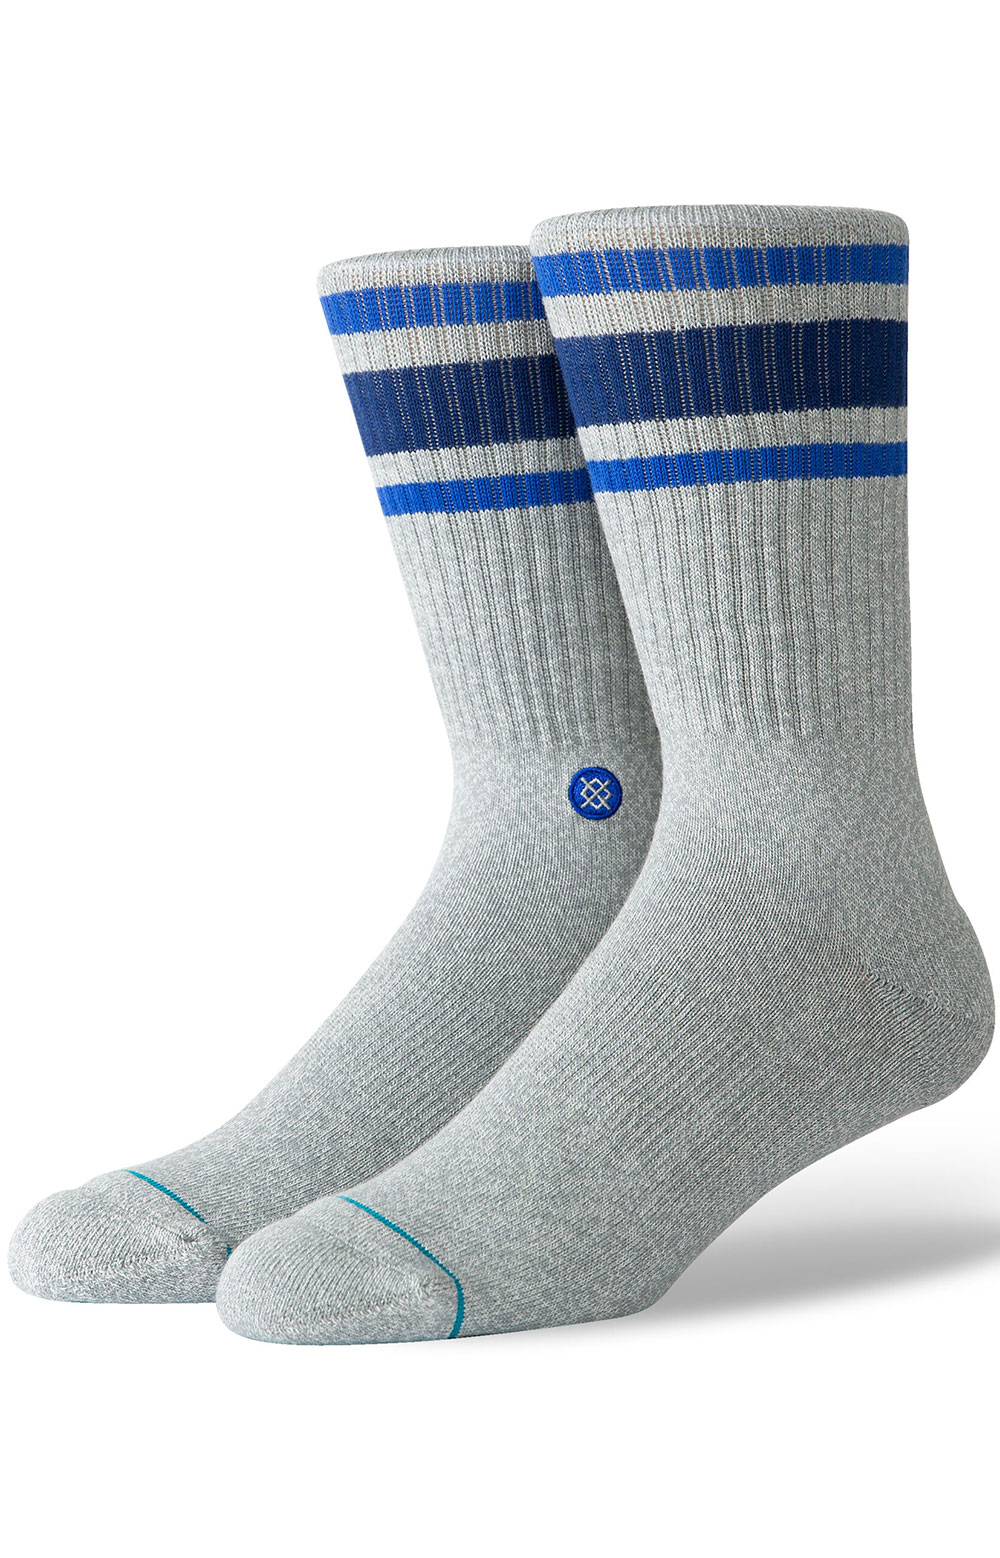 Boyd 4 Socks - Blue Steel